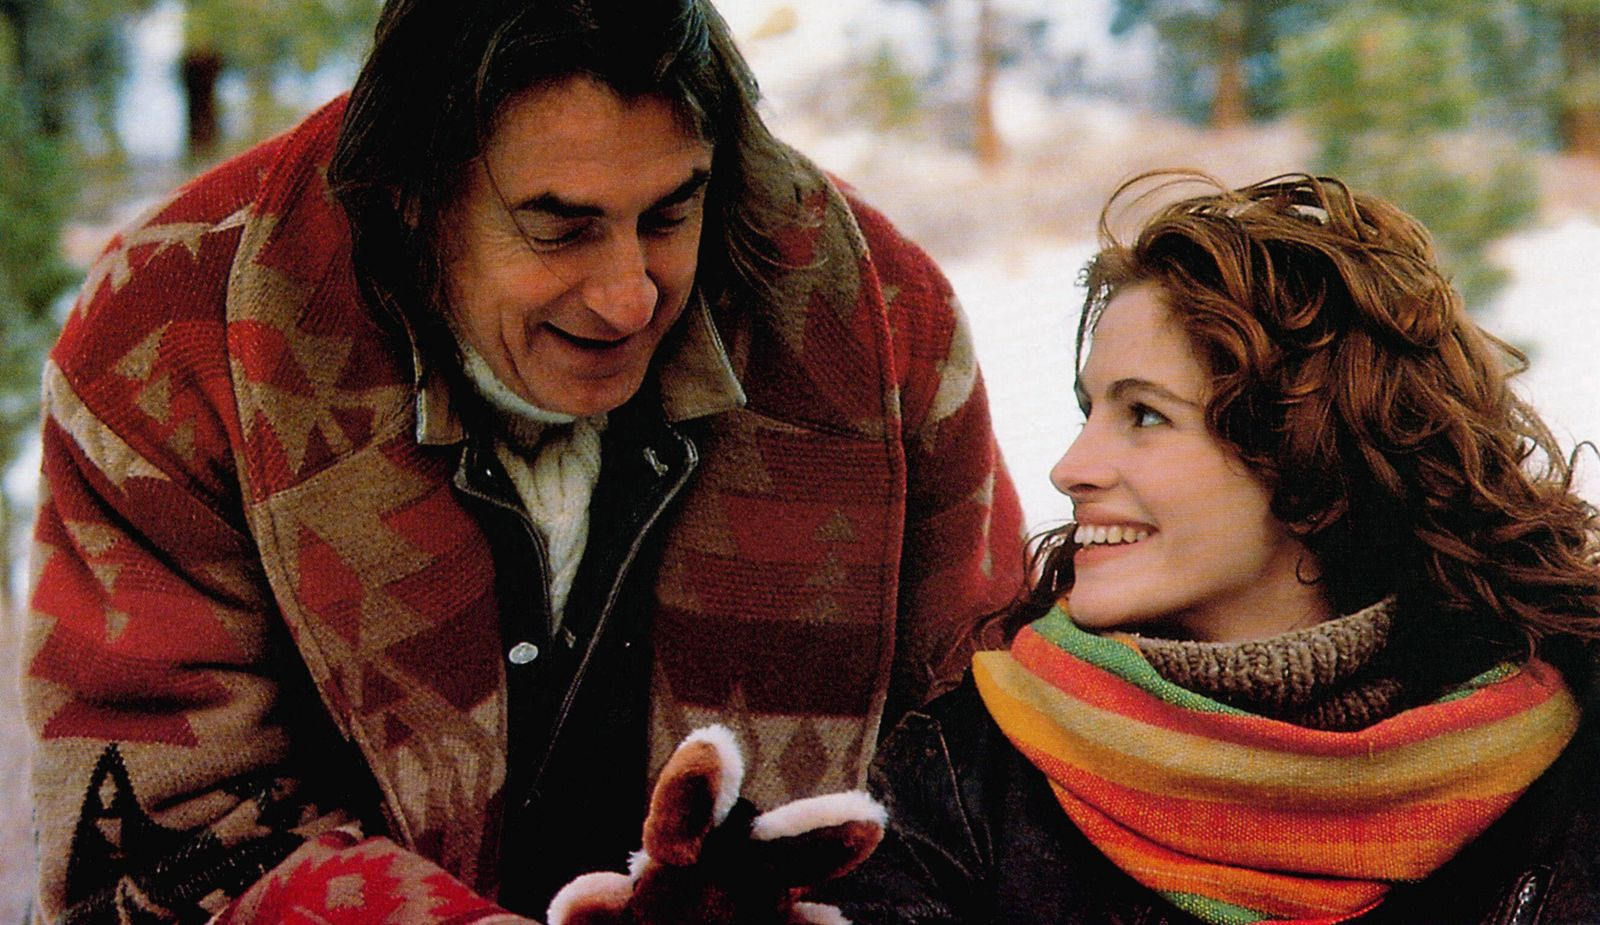 DYING YOUNG, from left: director Joel Schumacher, Julia Roberts on set, 1991, TM & Copyright © 20th Century Fox Film Co